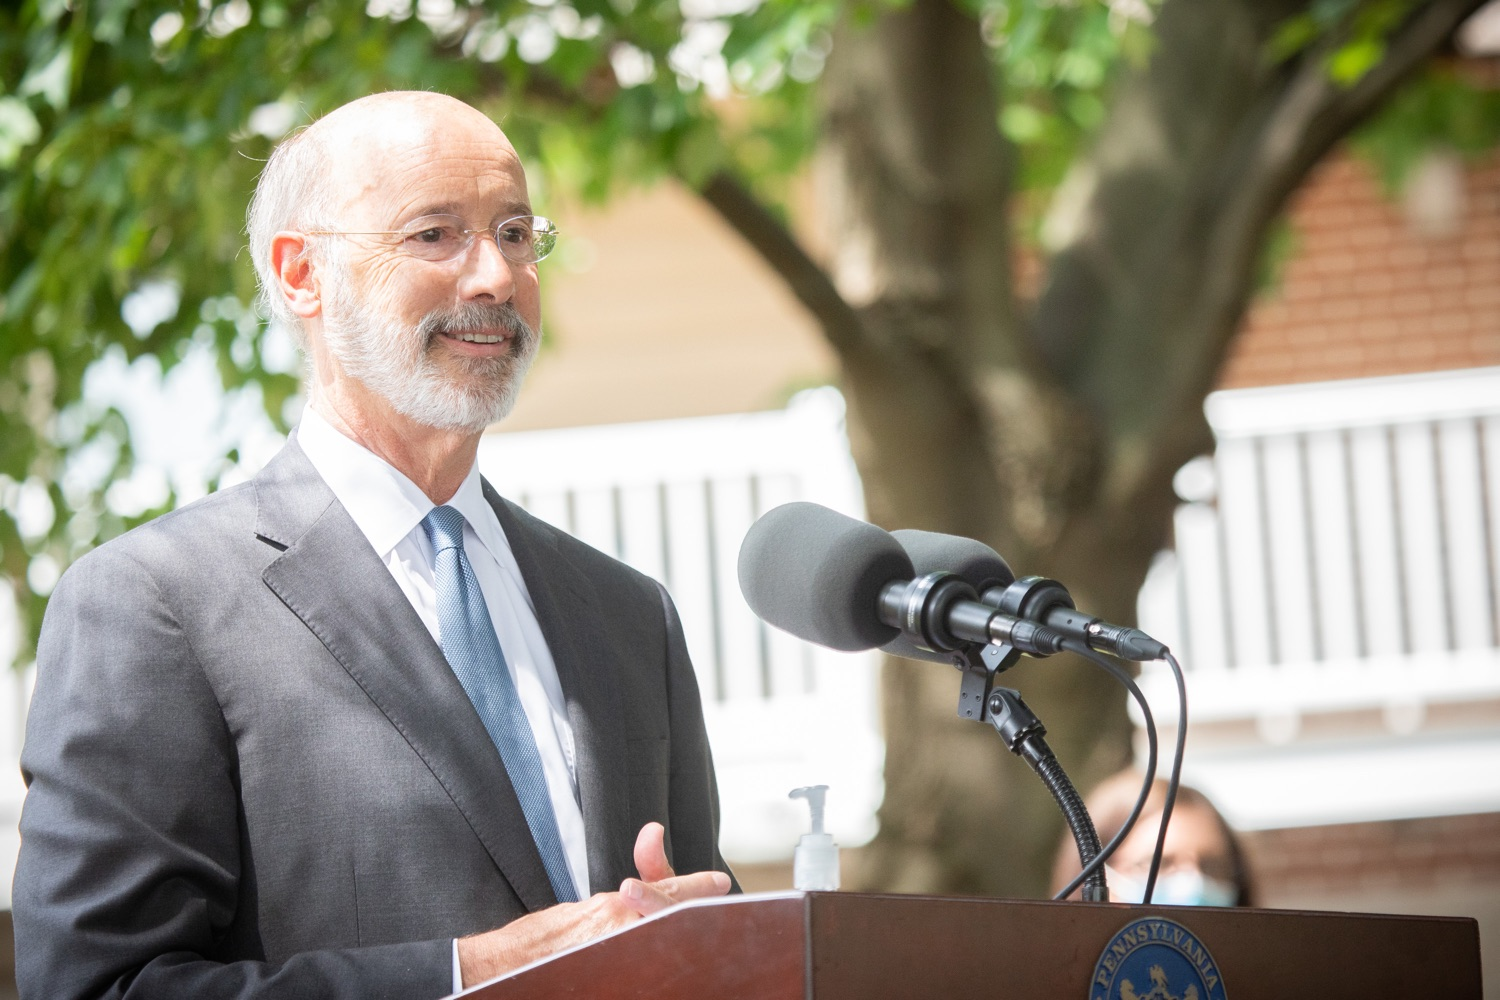 "<a href=""https://filesource.wostreaming.net/commonwealthofpa/photo/18178_GOV_Lancaster_Health_dz__15.jpg"" target=""_blank"">⇣ Download Photo<br></a>Pennsylvania Governor Tom Wolf speaking at the event.  Governor Tom Wolf today visited Lancaster Health Center, a federally qualified health center, to thank staff for their work to ensure the communitys most vulnerable receive care during COVID-19 and year-round.  Harrisburg, PA  July 24, 2020"